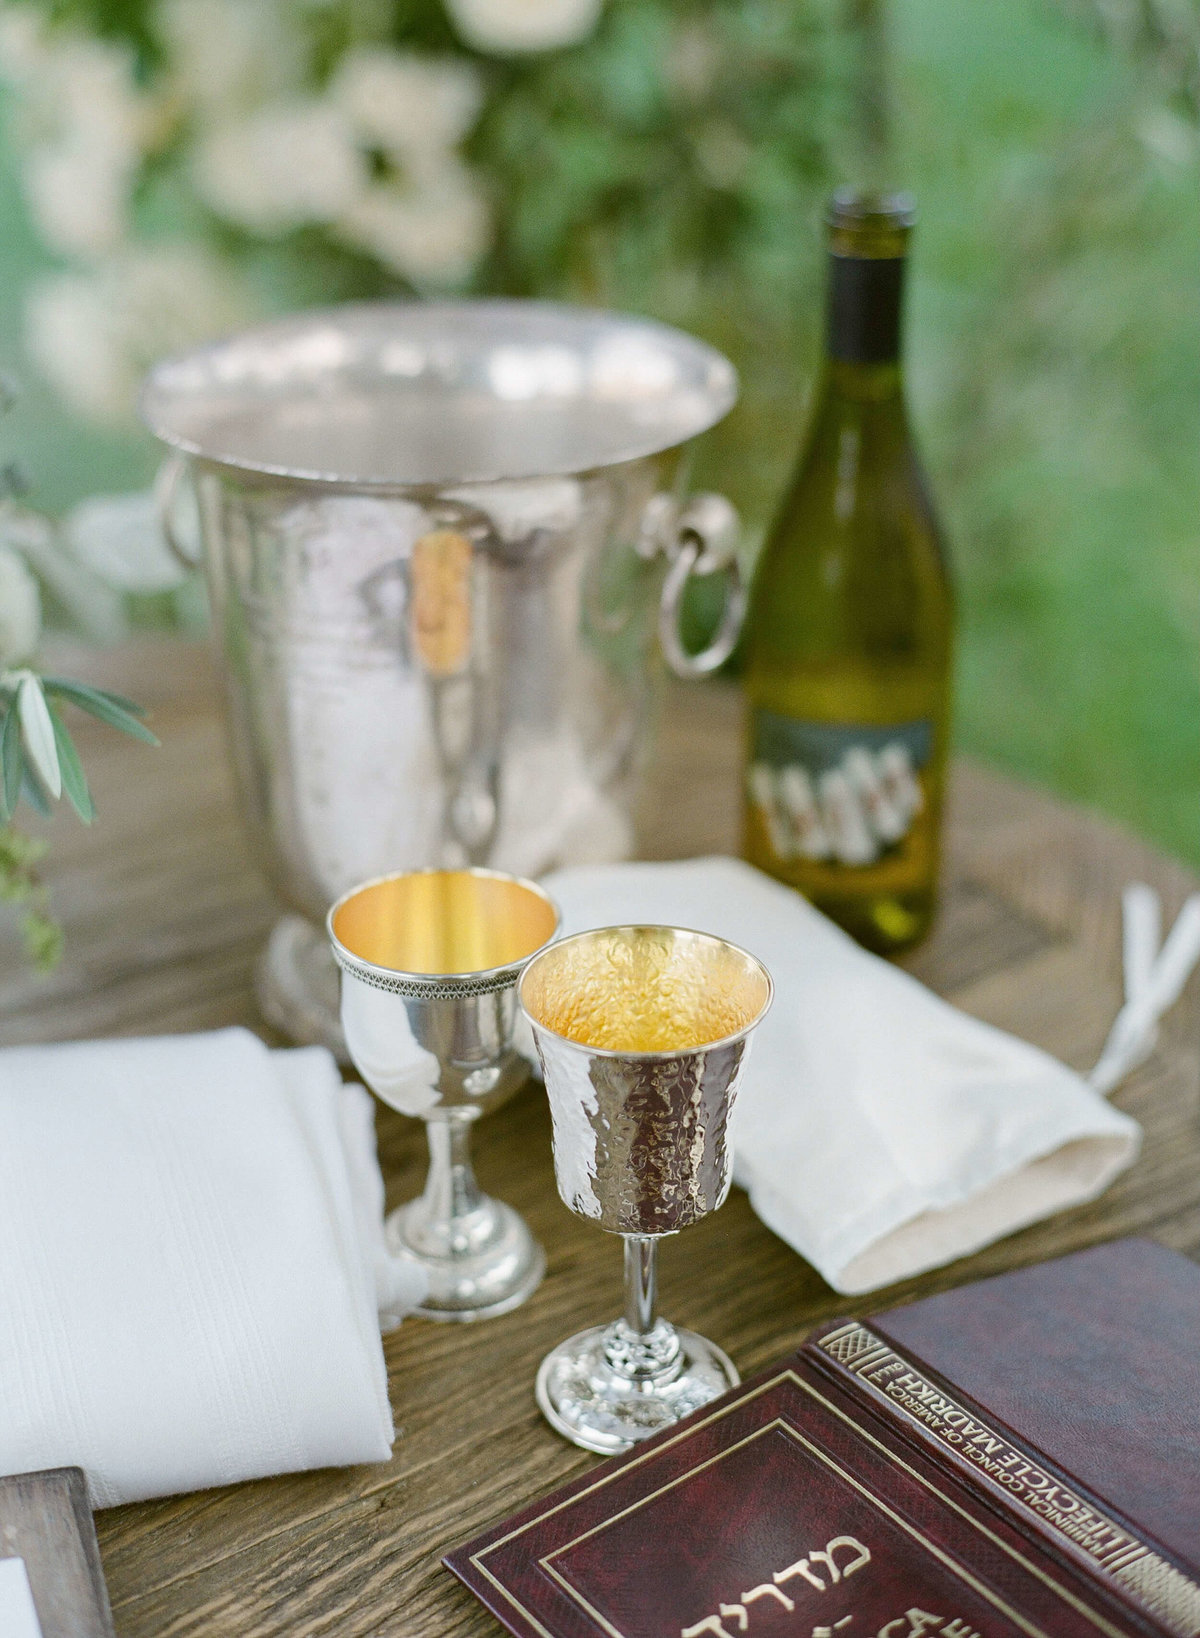 63-KTMerry-weddings-ceremony-cups-Meadowood-Napa-Valley